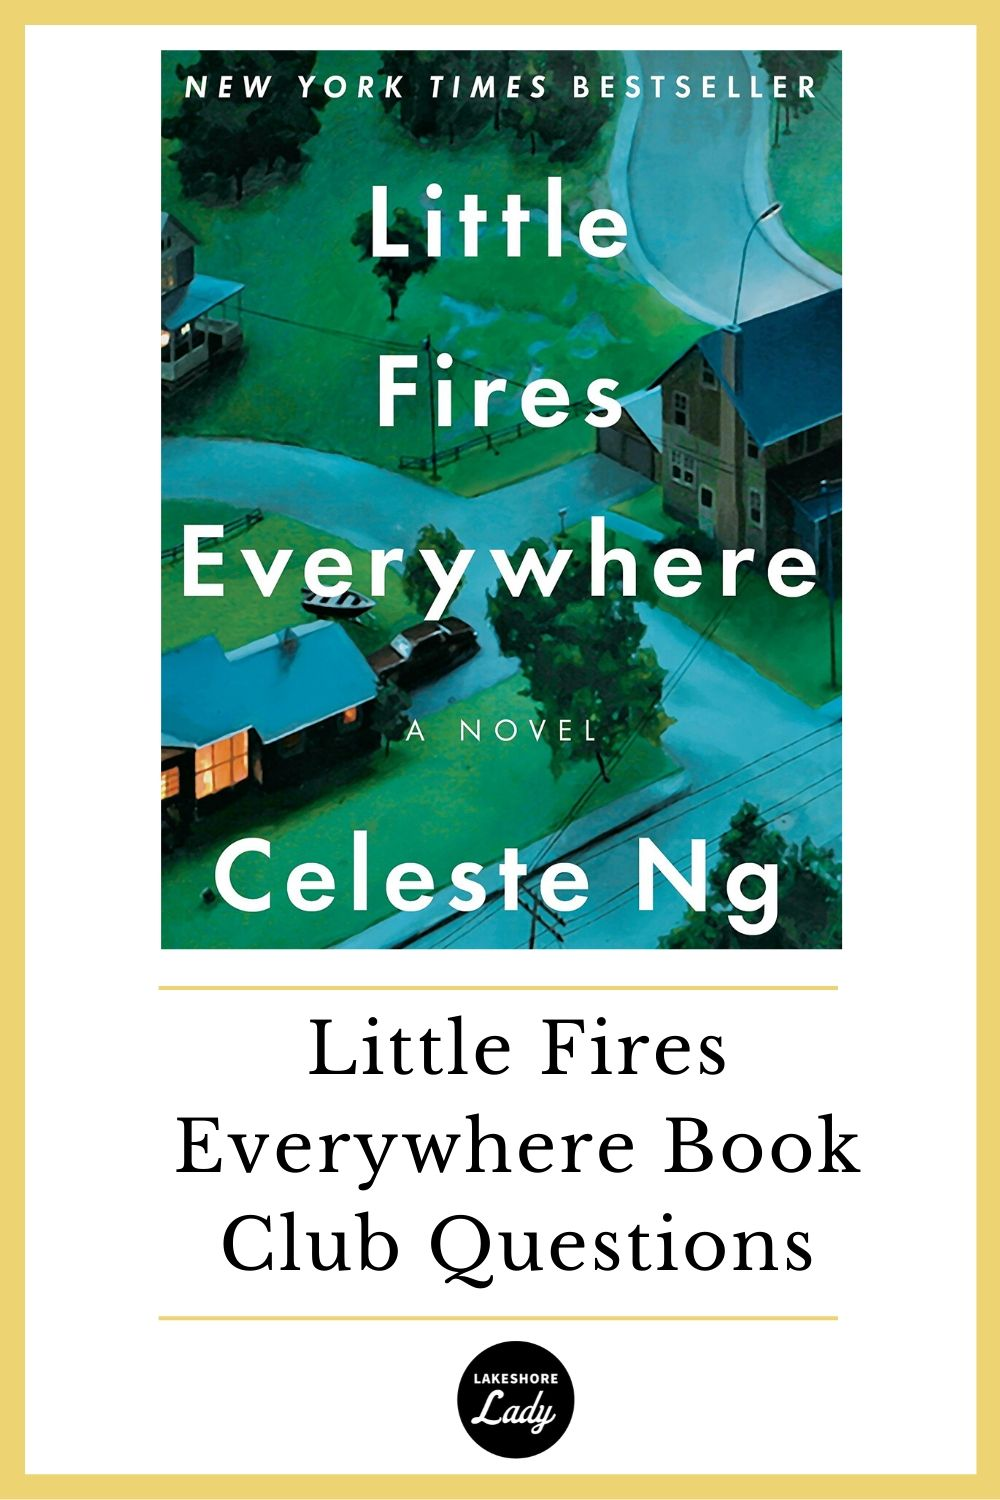 Little Fires Everywhere Book Club Questions